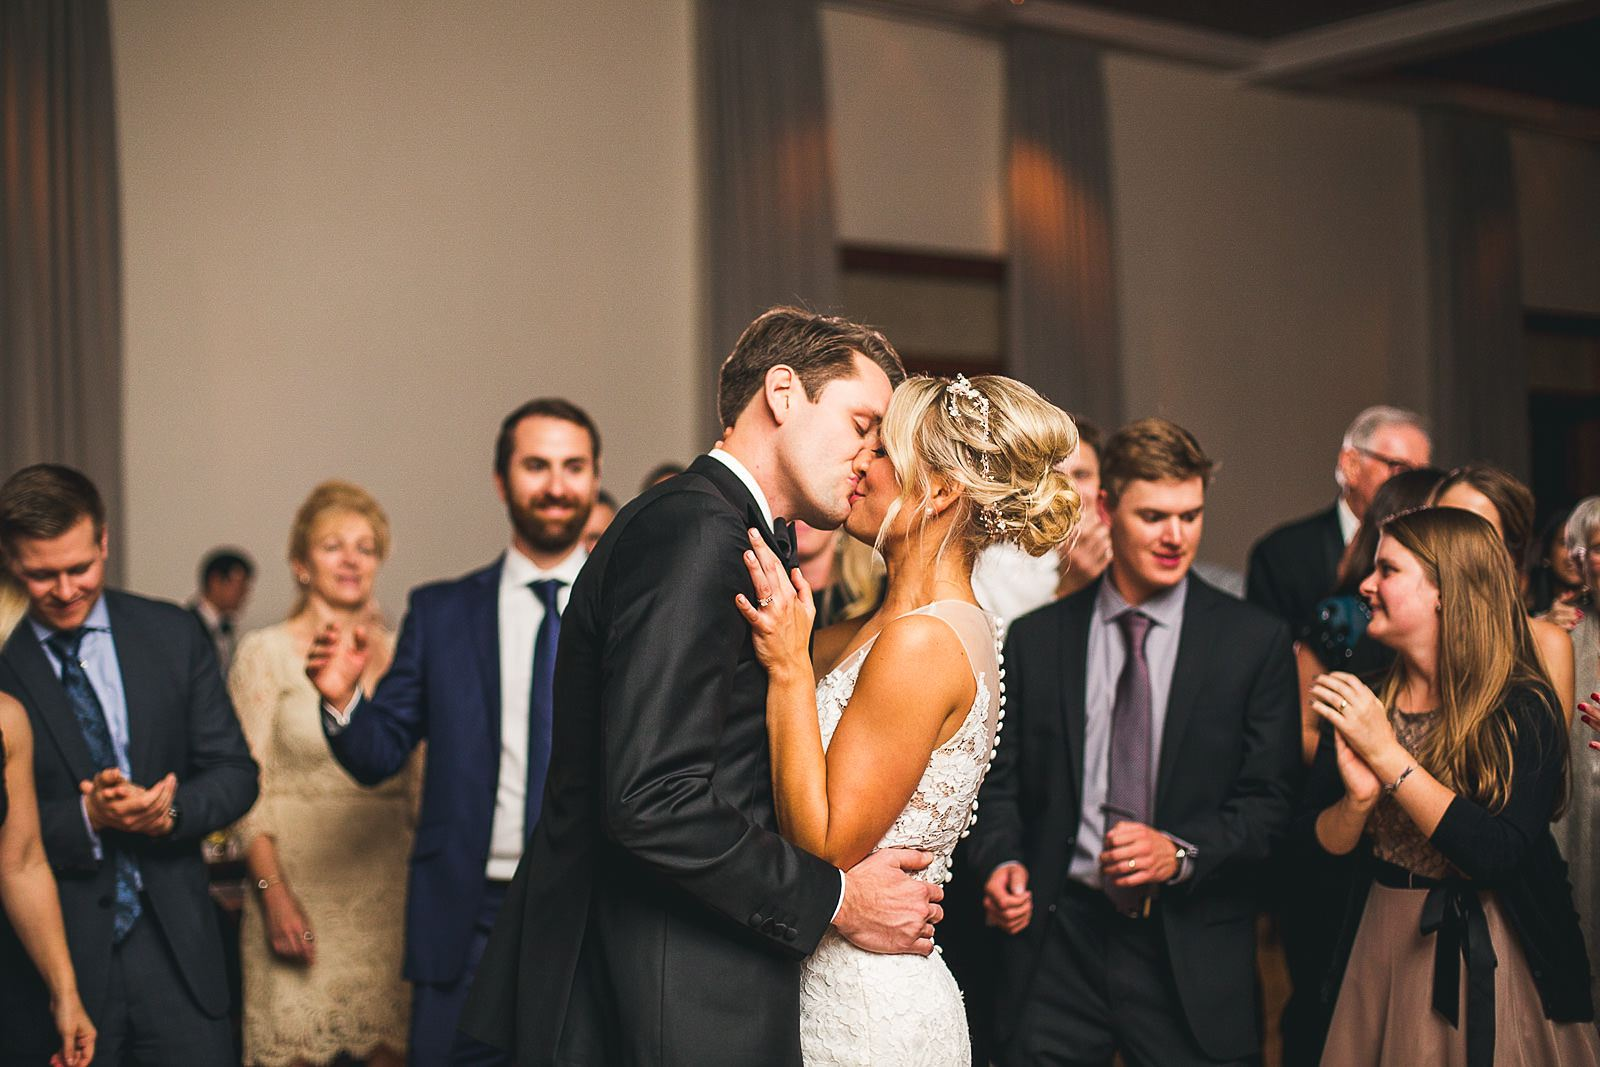 74 ivy room wedding photos - Ivy Room Wedding // Audrey + Tyler